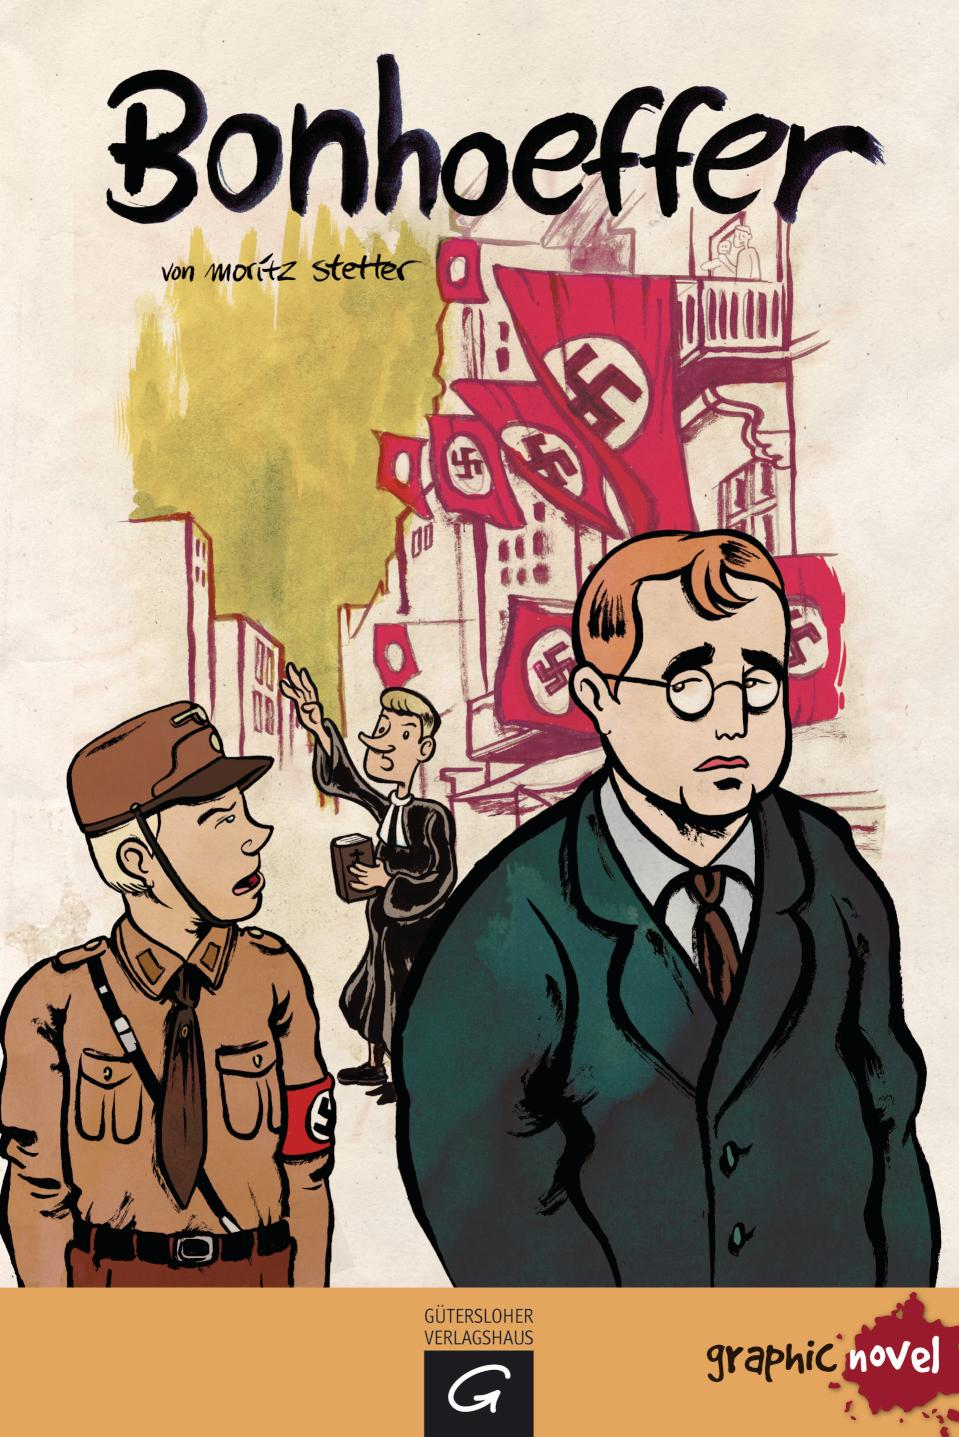 Bonhoeffer Graphic Novel